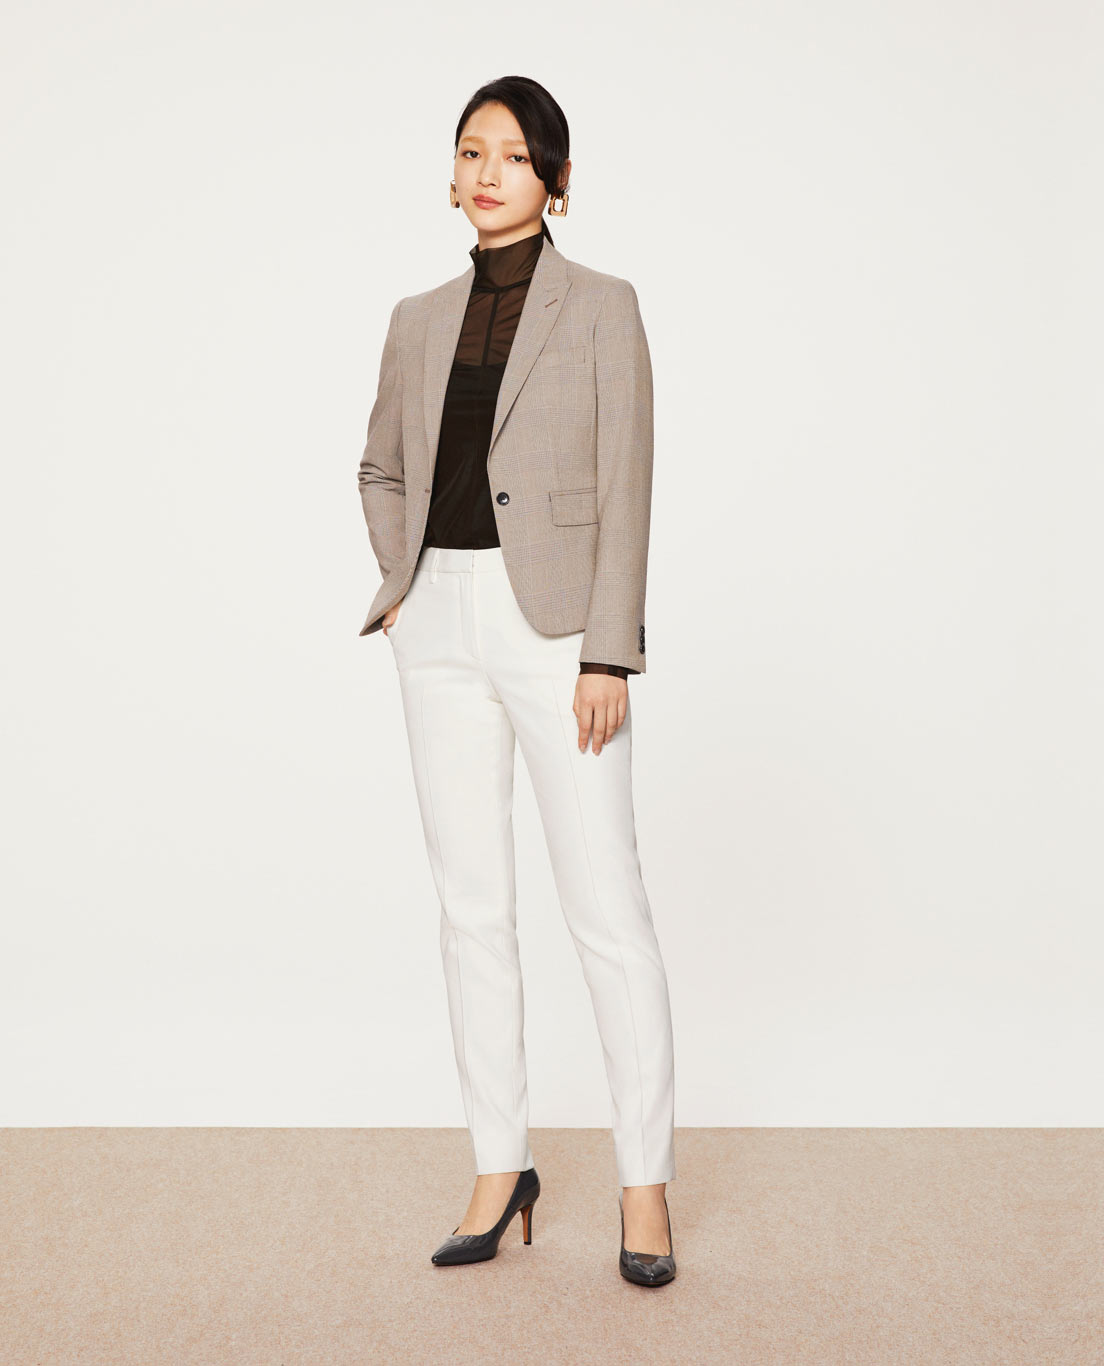 COMFORT TAILORED JACKET: 5443 / WASHABLE / TR2WAYSTRETCH / BROWNCHECK, TAPERED PANTS: 5454 / WASHABLE / STRETCH / UV / DRY / COOL / WHITE